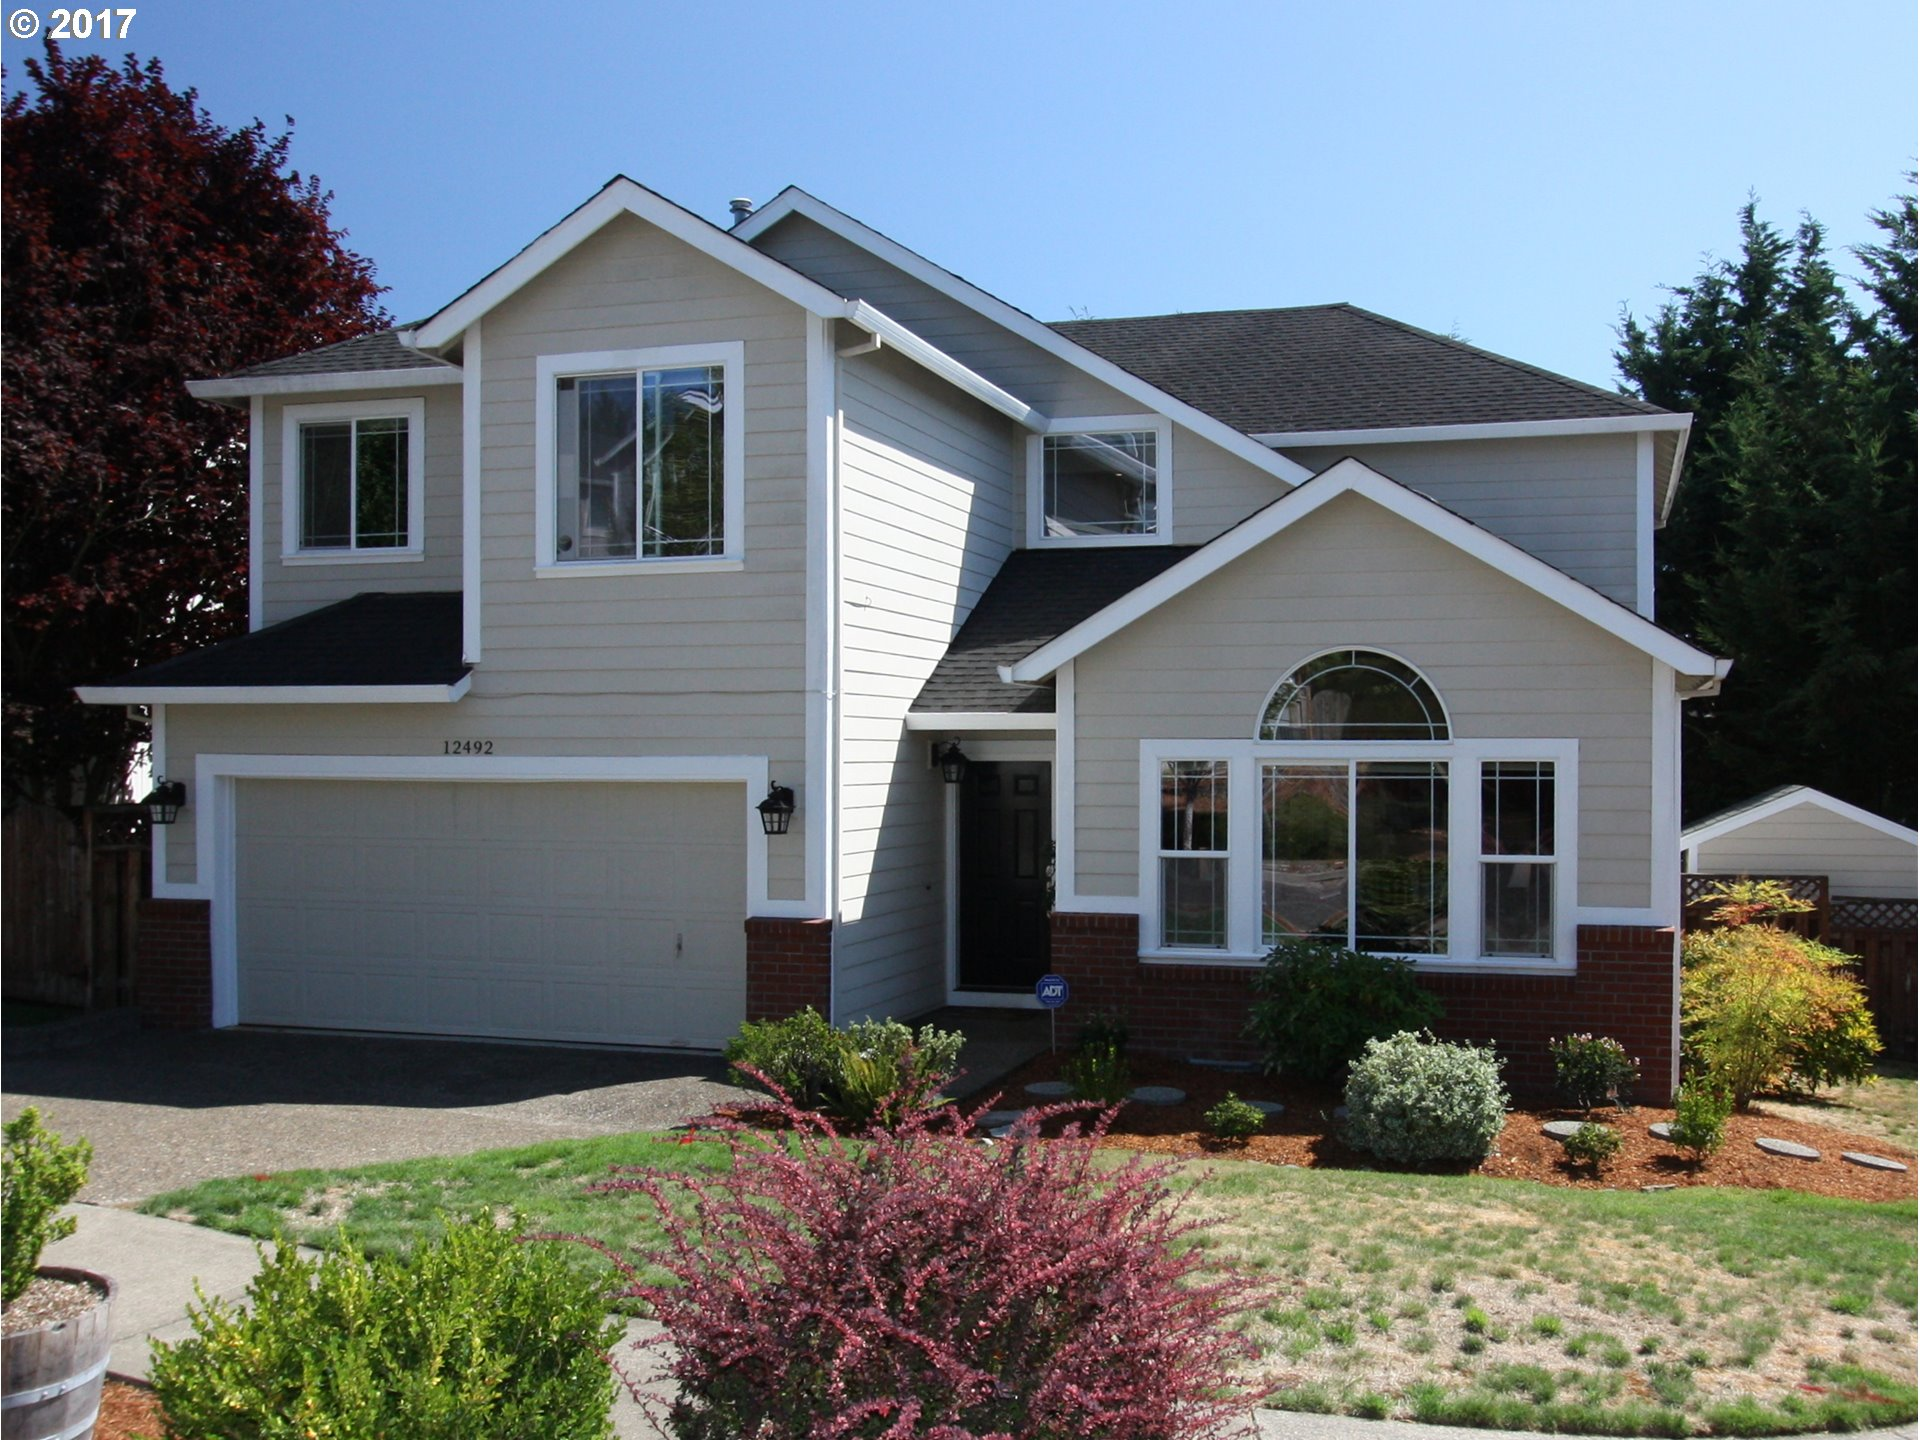 Location, location, location. Conveniently near shopping and entertainment galore. Walk to Cinetopia or Big Al's. This home feeds into Beaverton's newest High School.  Mountainside opens to Freshman /Sophomores this year and adds a new class the next two years.